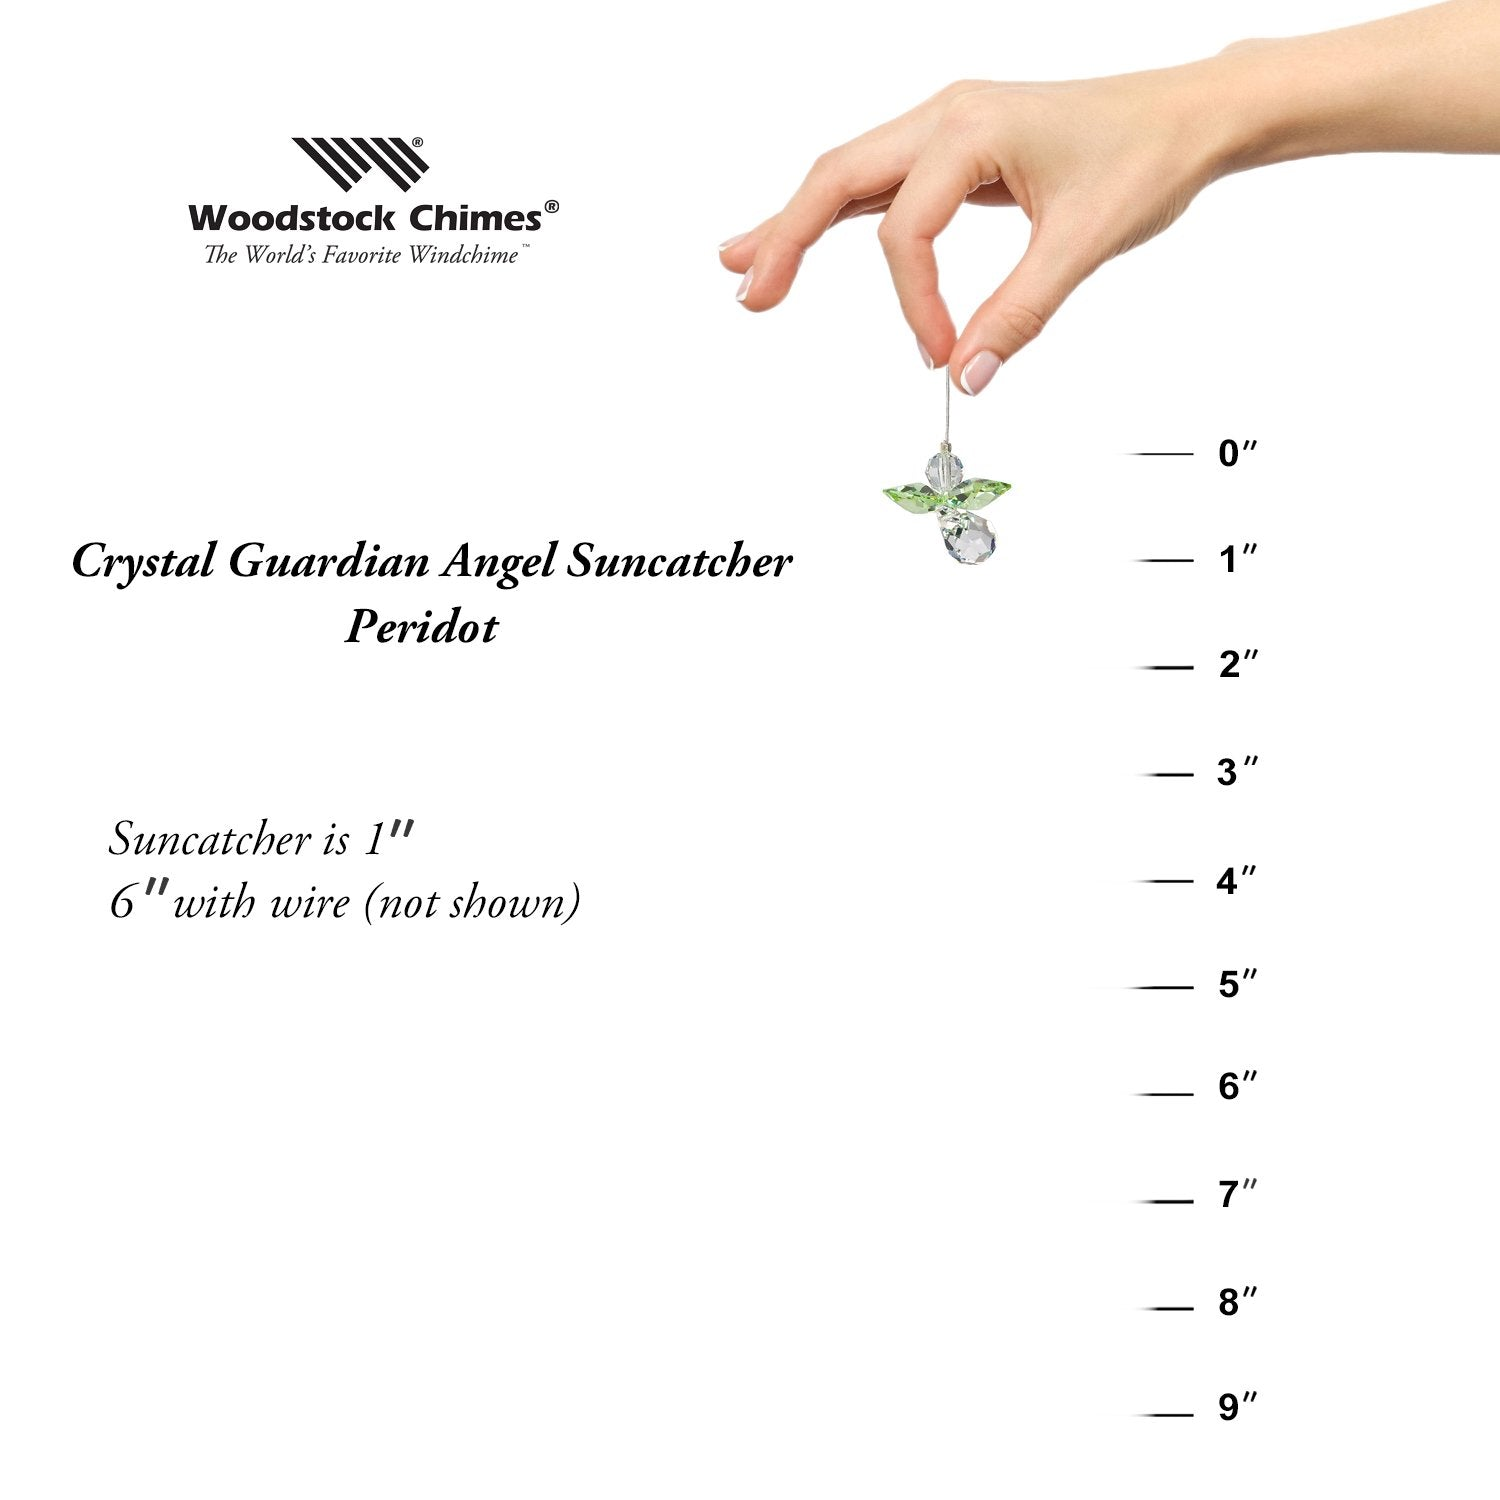 Crystal Guardian Angel Suncatcher - Peridot (August) proportion image